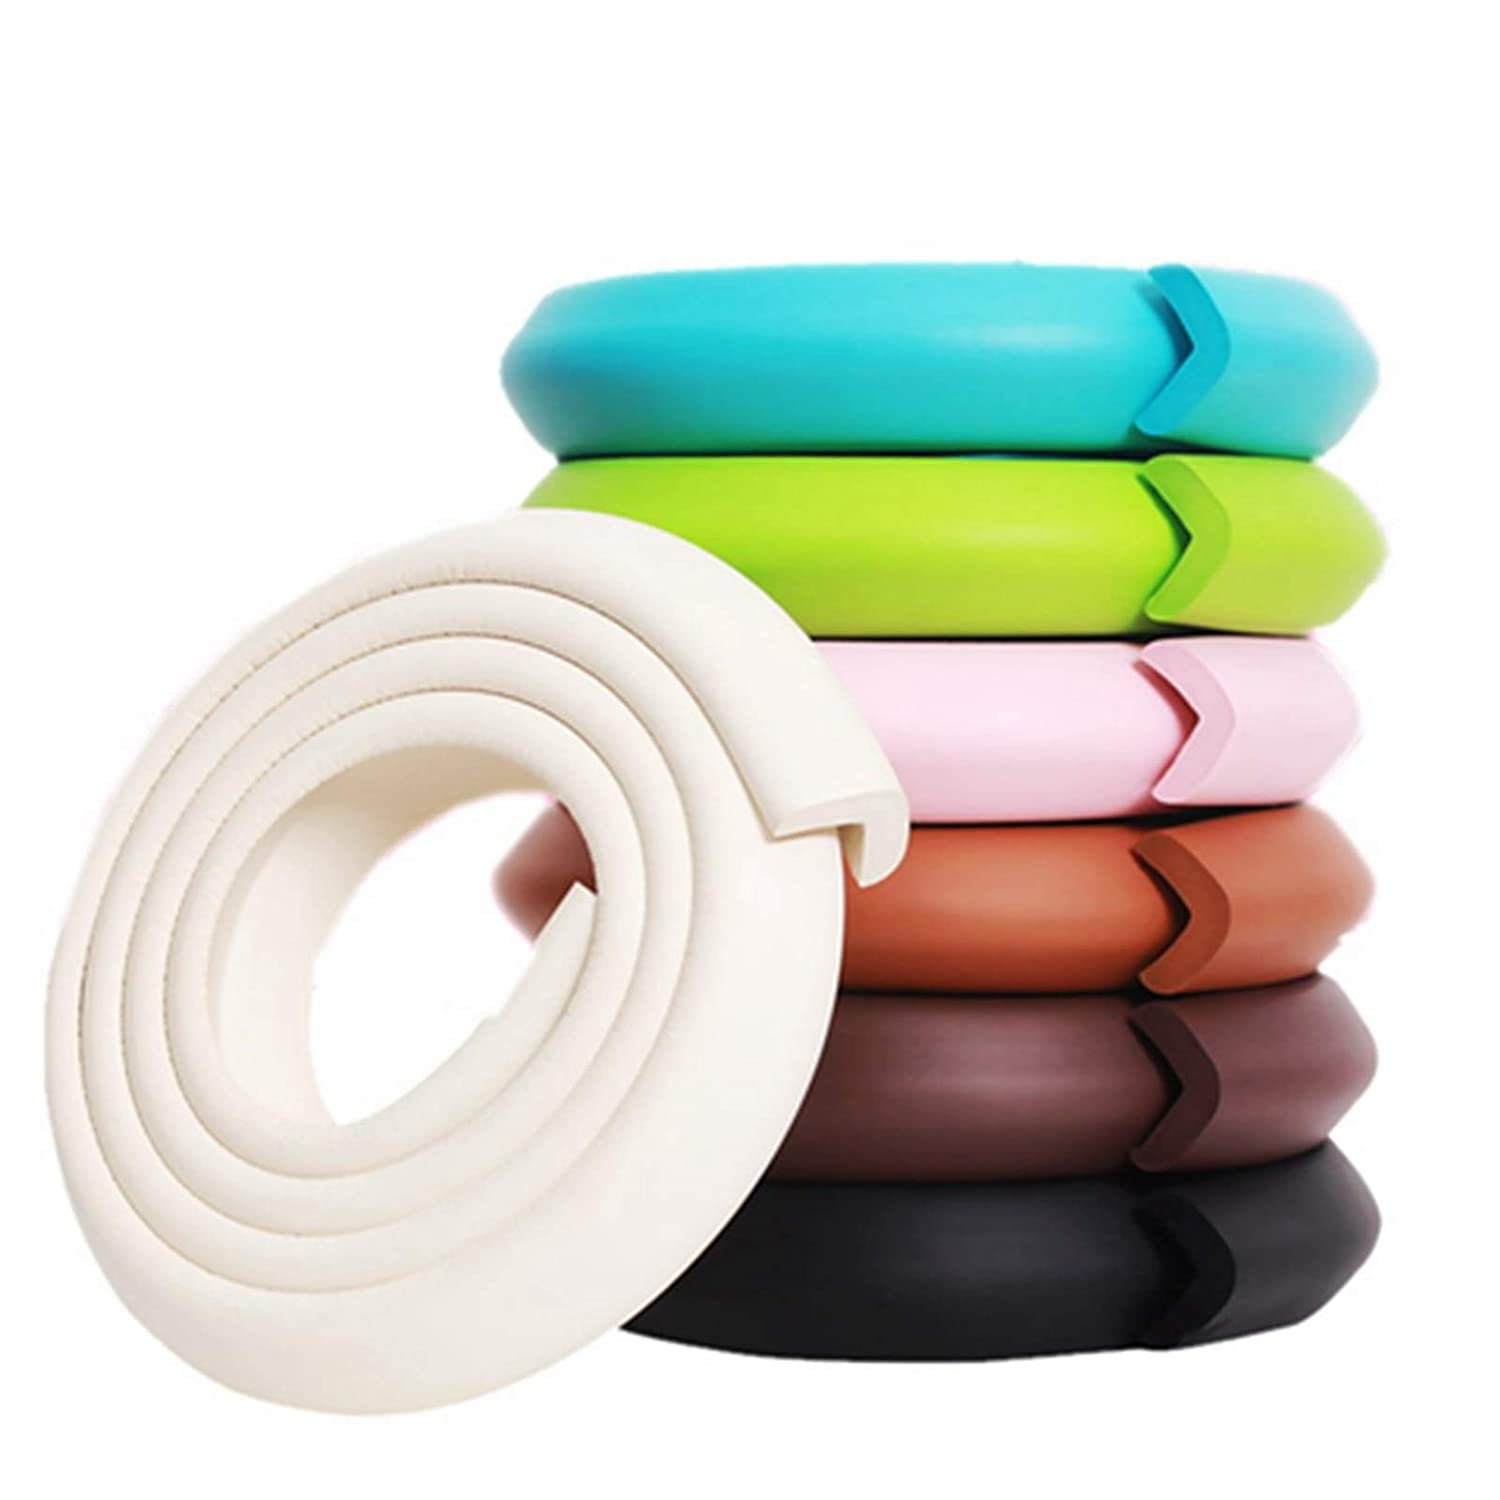 M2cbridge L Shape Extra Thick Furniture Table Edge Protectors Foam Baby Safety Bumper Guard 6.5 Ft (Off White)